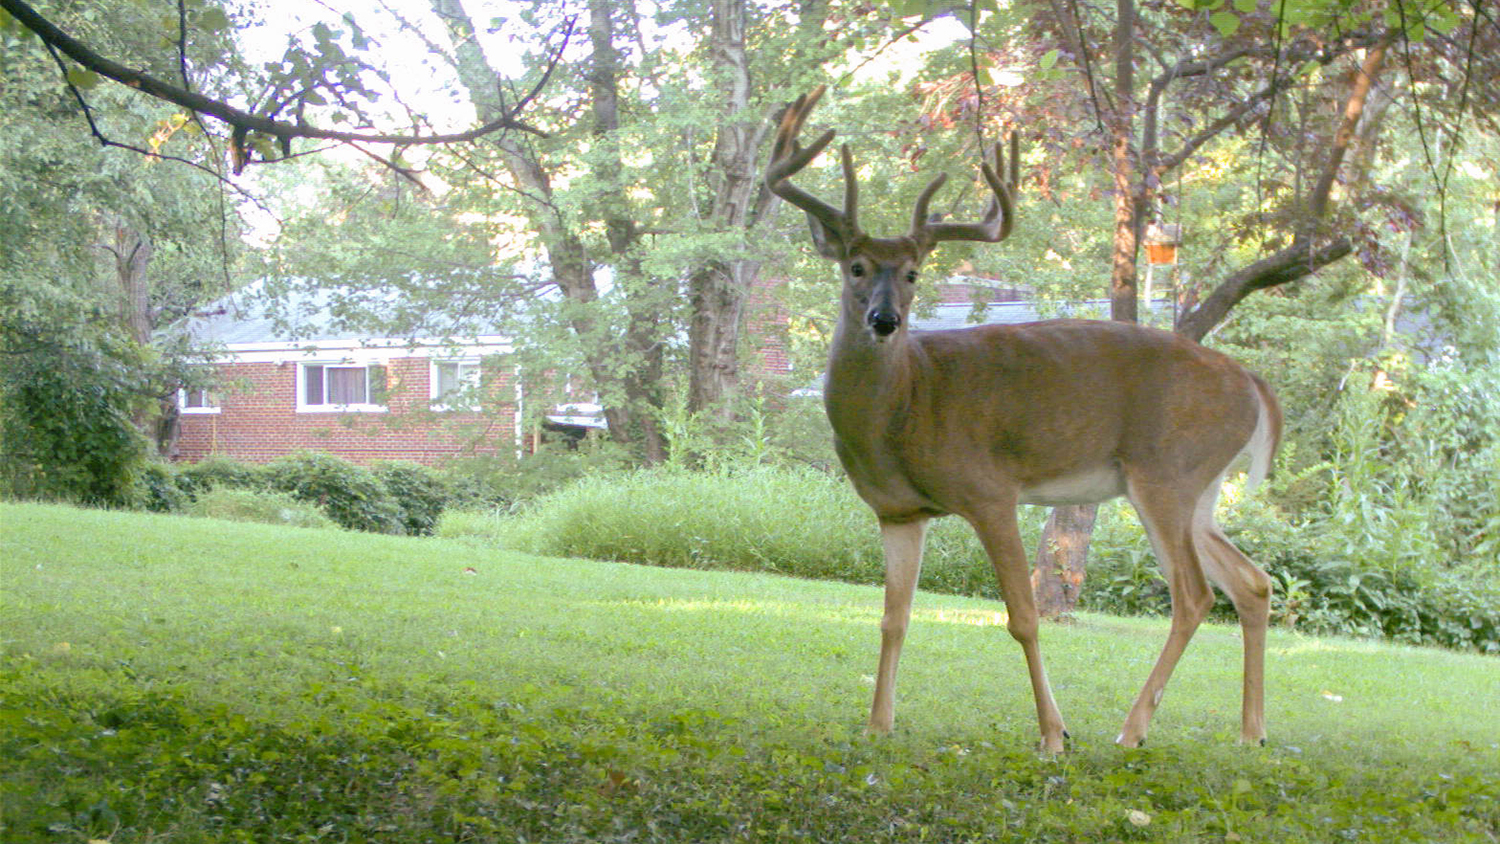 Deer Outside Home - Wild Suburbia: More Mammals Than Expected Live Near People - Forestry and Environmental Resources NC State University